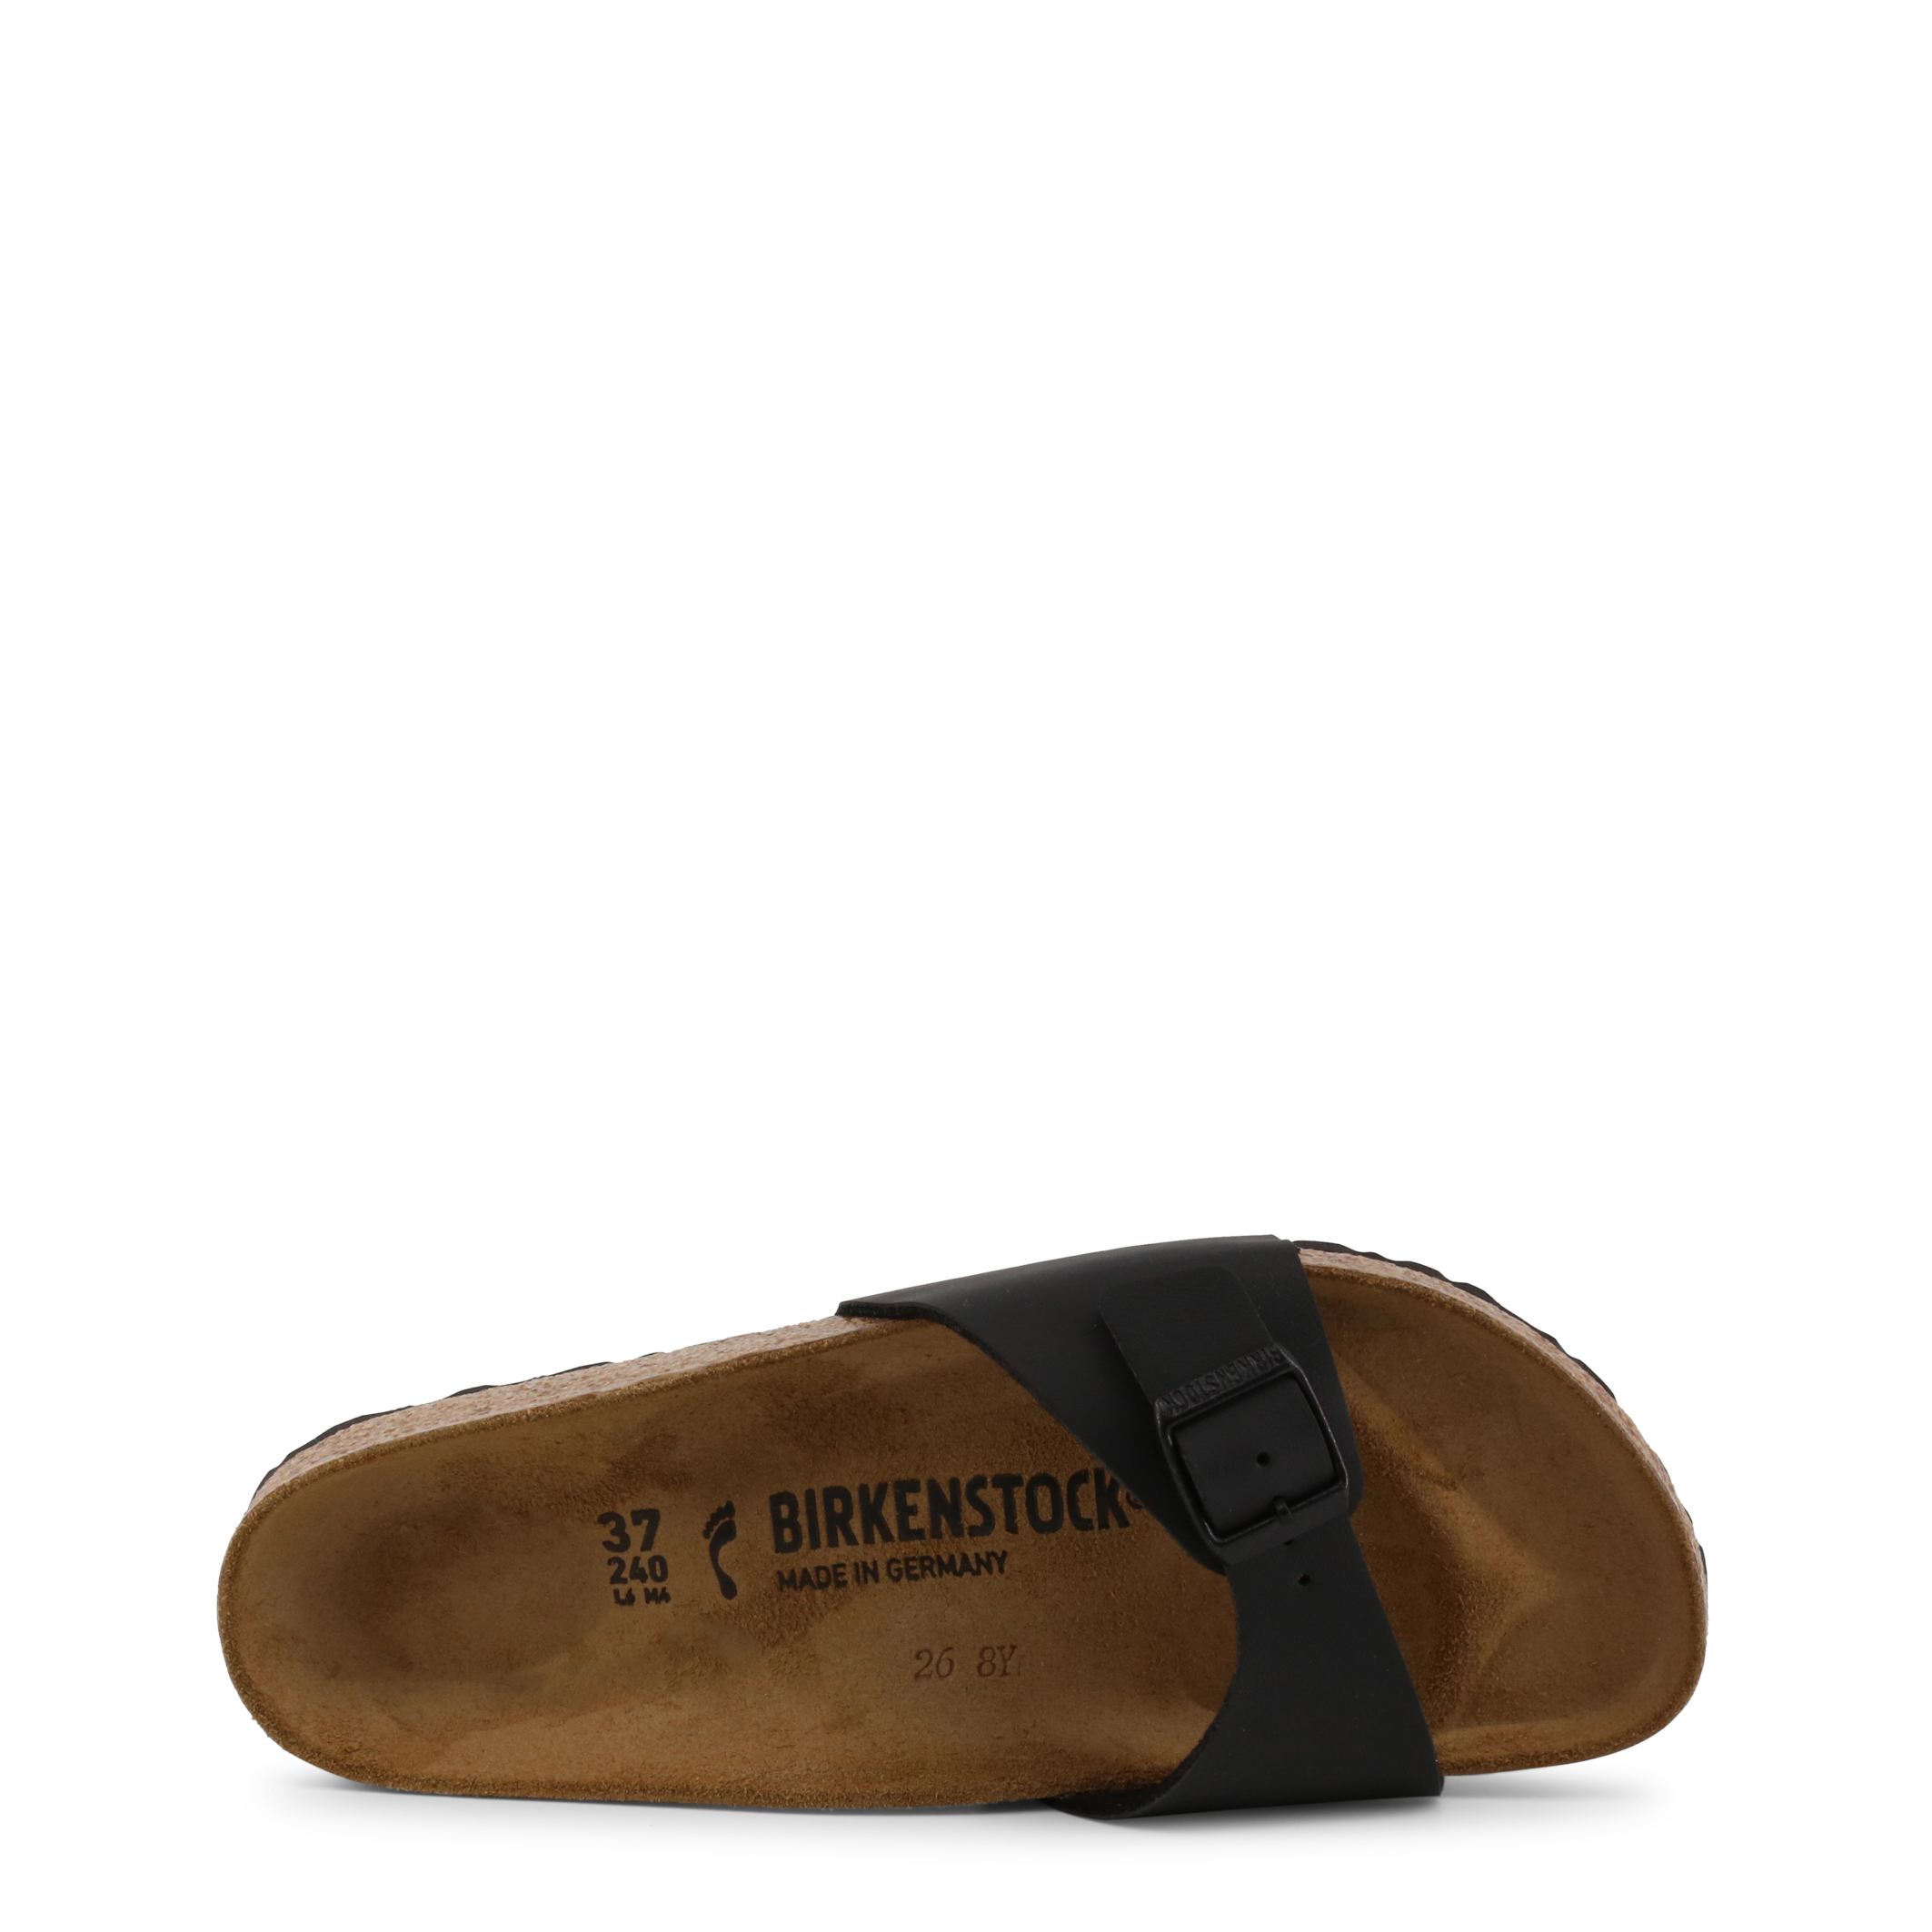 Tongs / Mules  Birkenstock MADRID_BIRKO-FLOR black